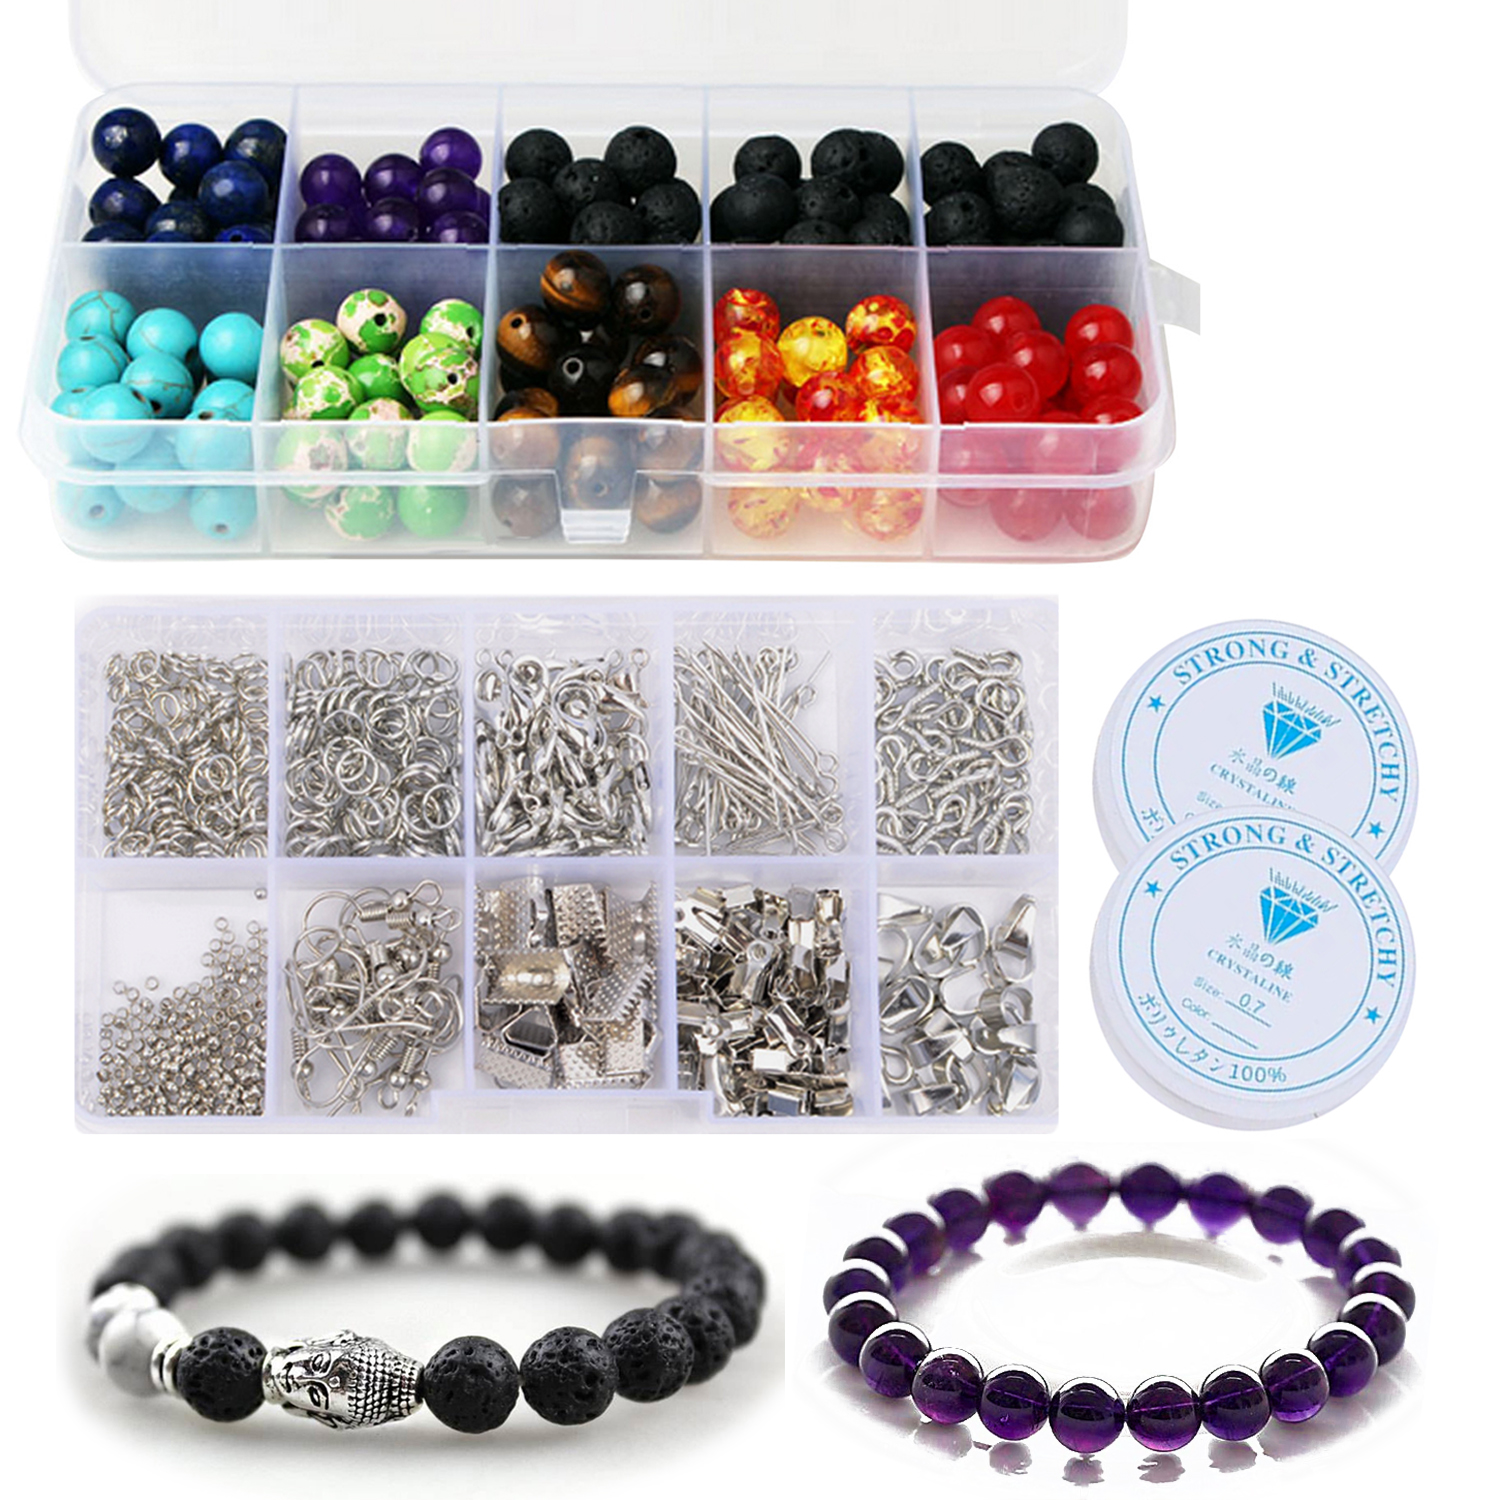 640pcs DIY Craft Toys String Beads Set With 200pcs 8mm Lava Chakra Beads 2 Roll Crystal String For Bracelet Jewelry Making Tools